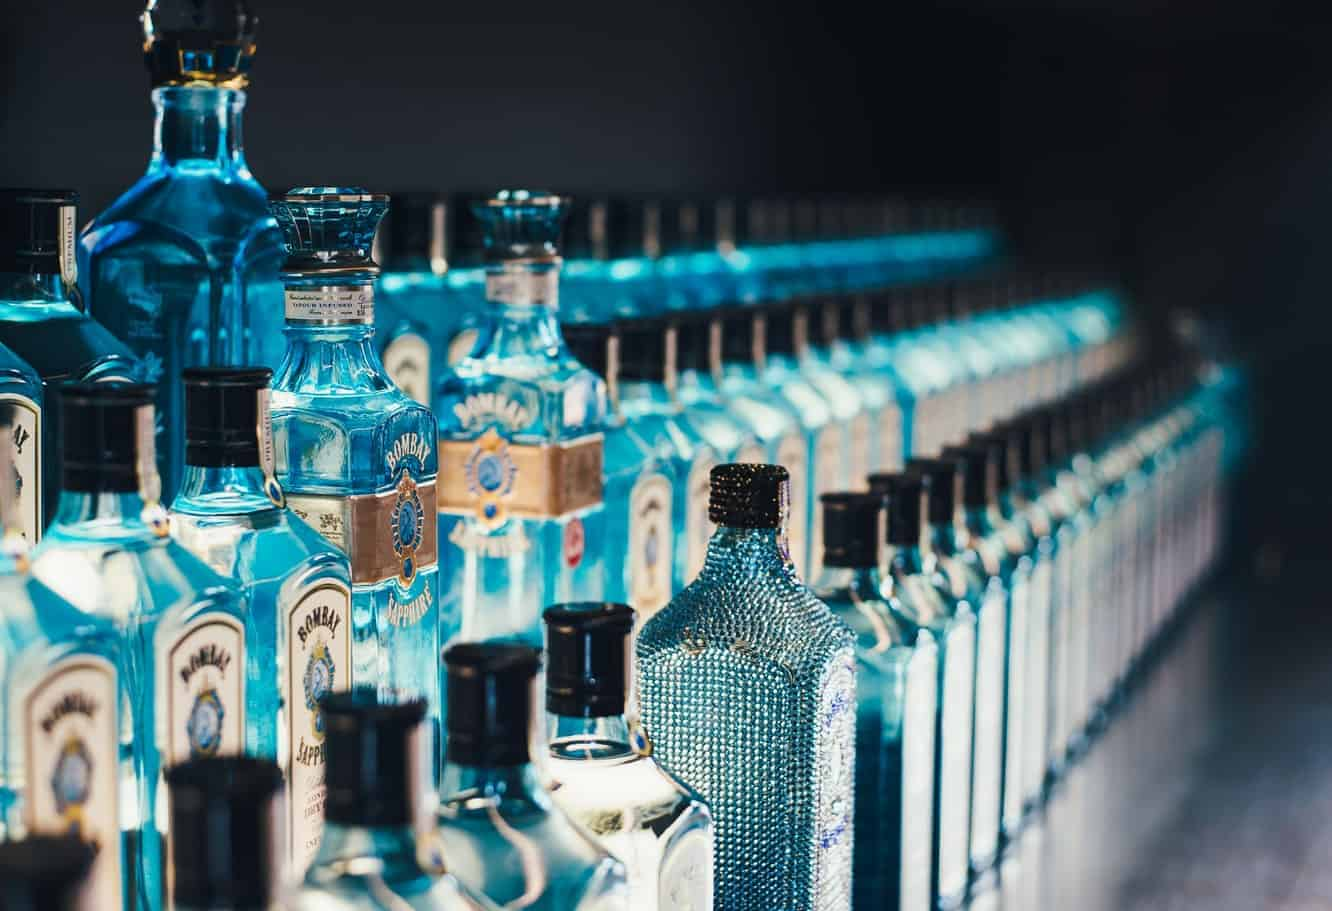 A row of Bombay Sapphire bottles